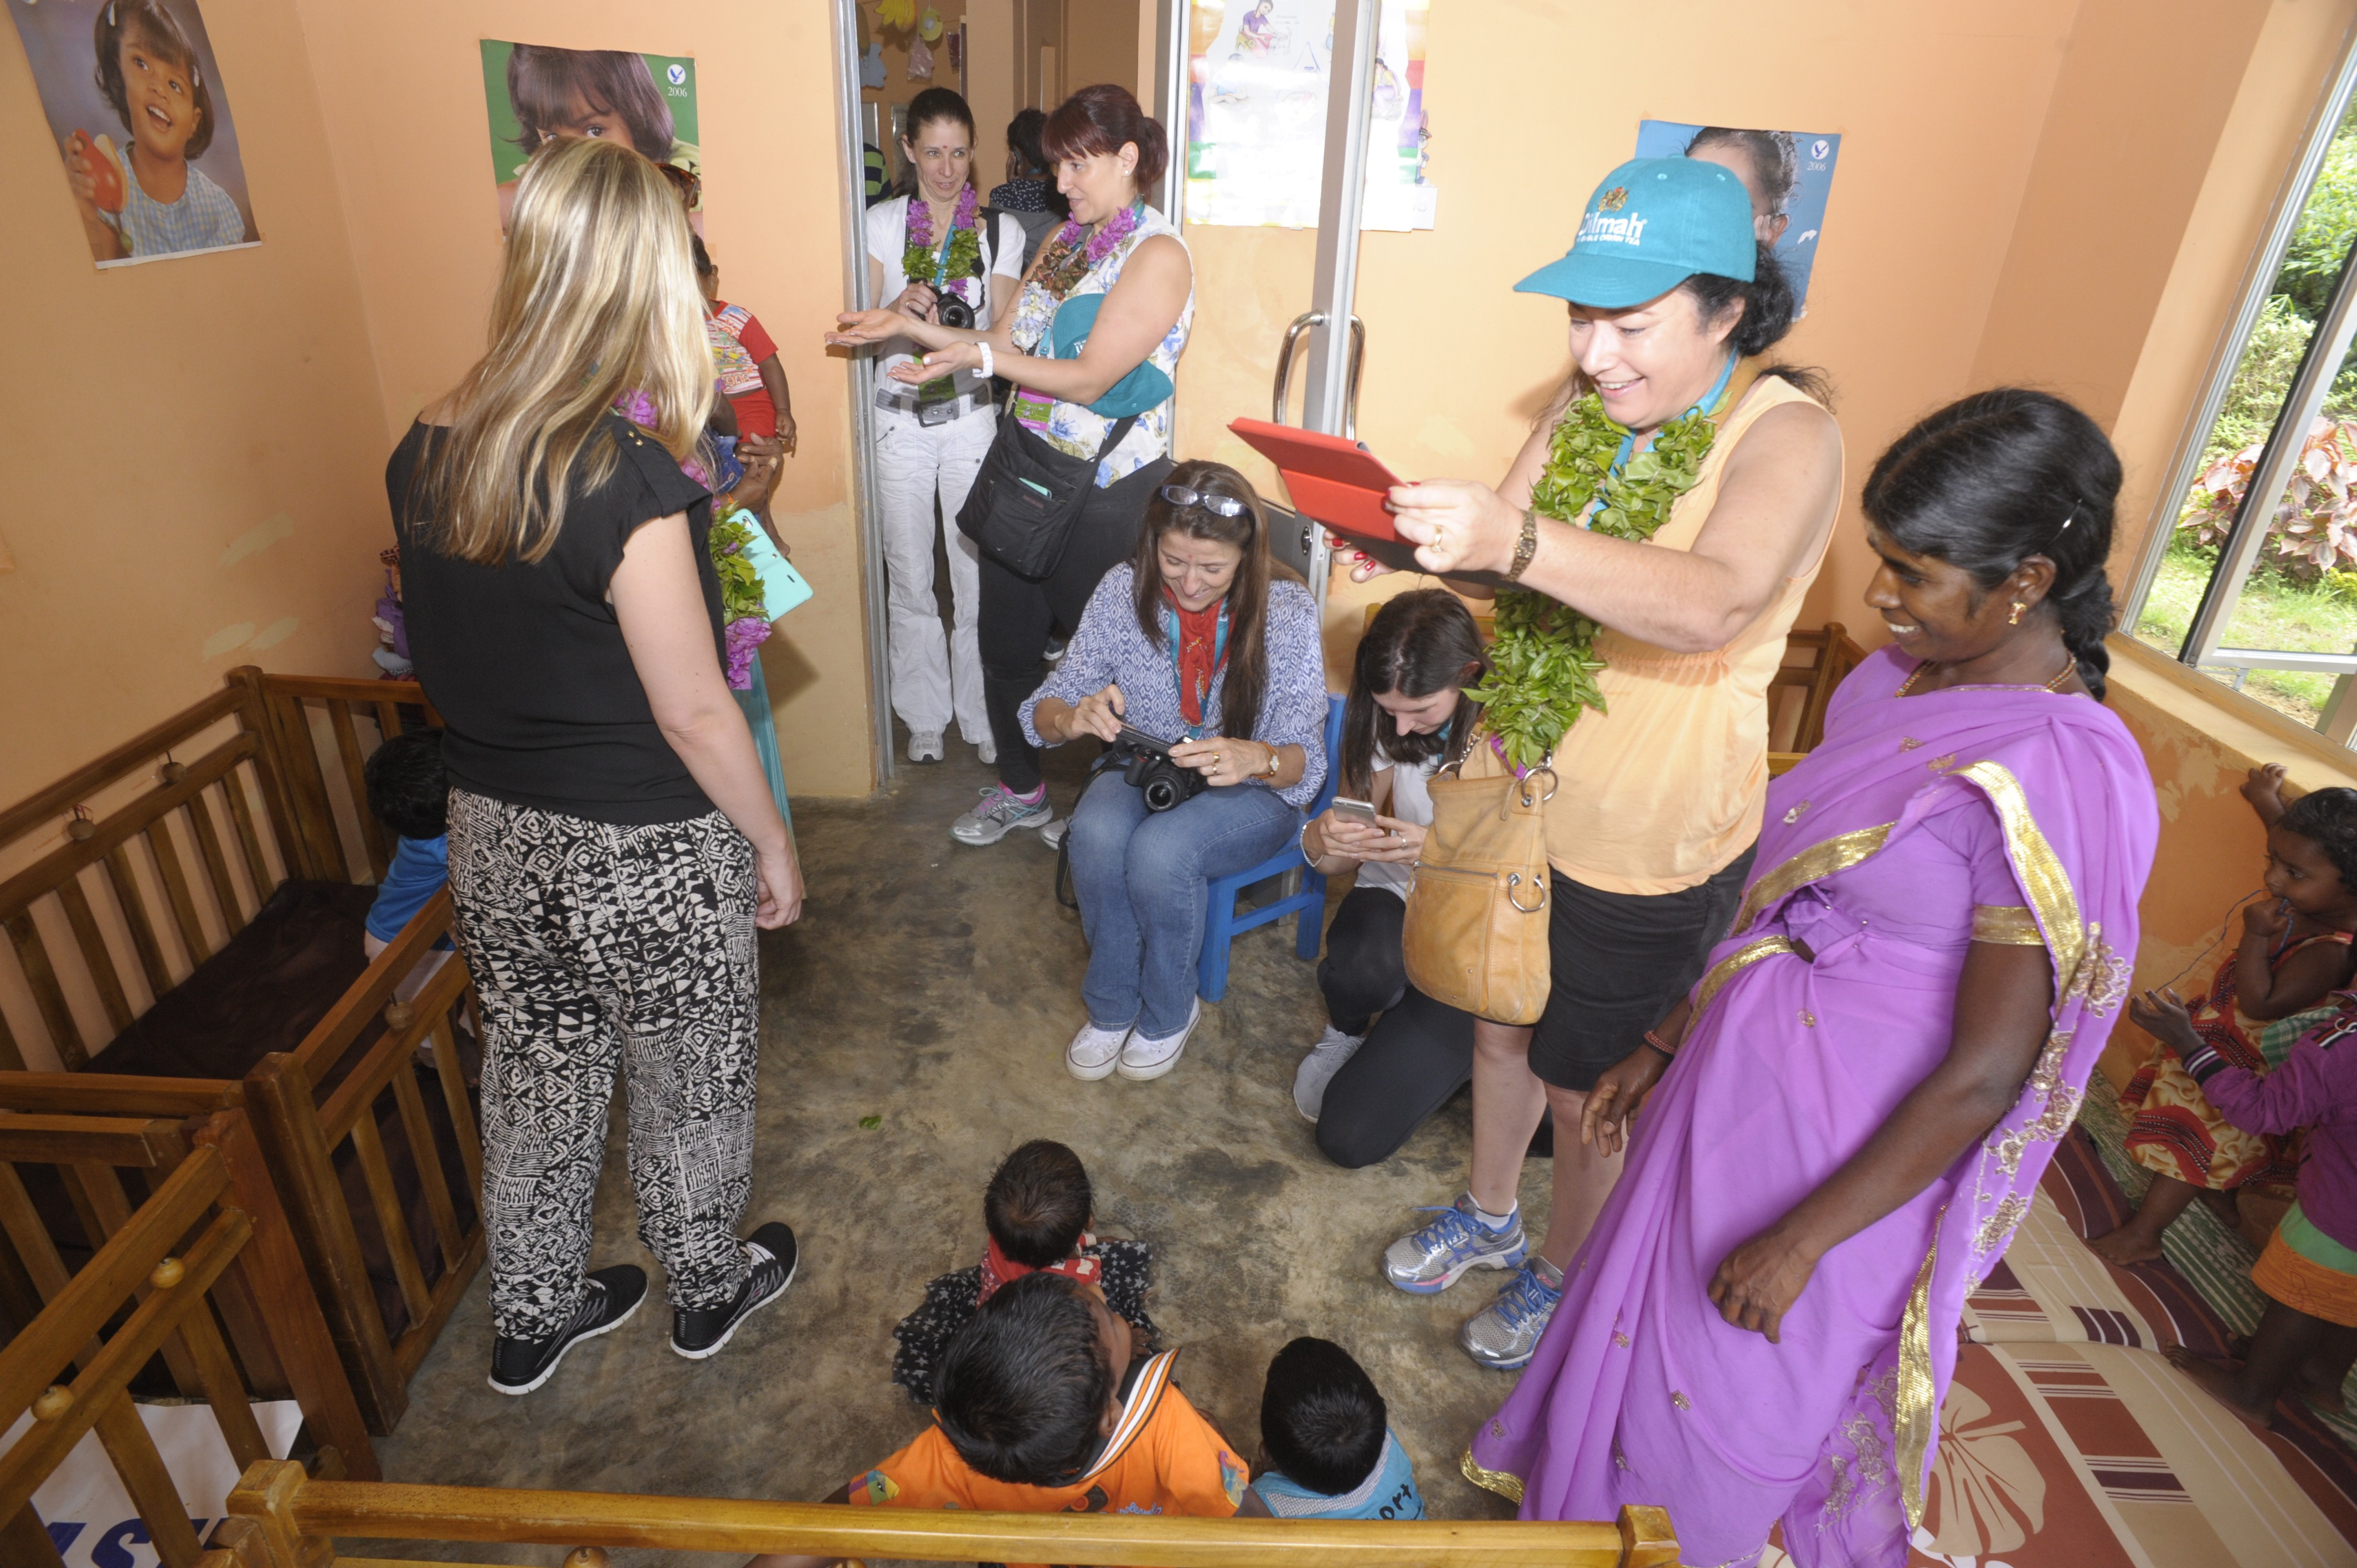 Participants interacting with kids at the Creche